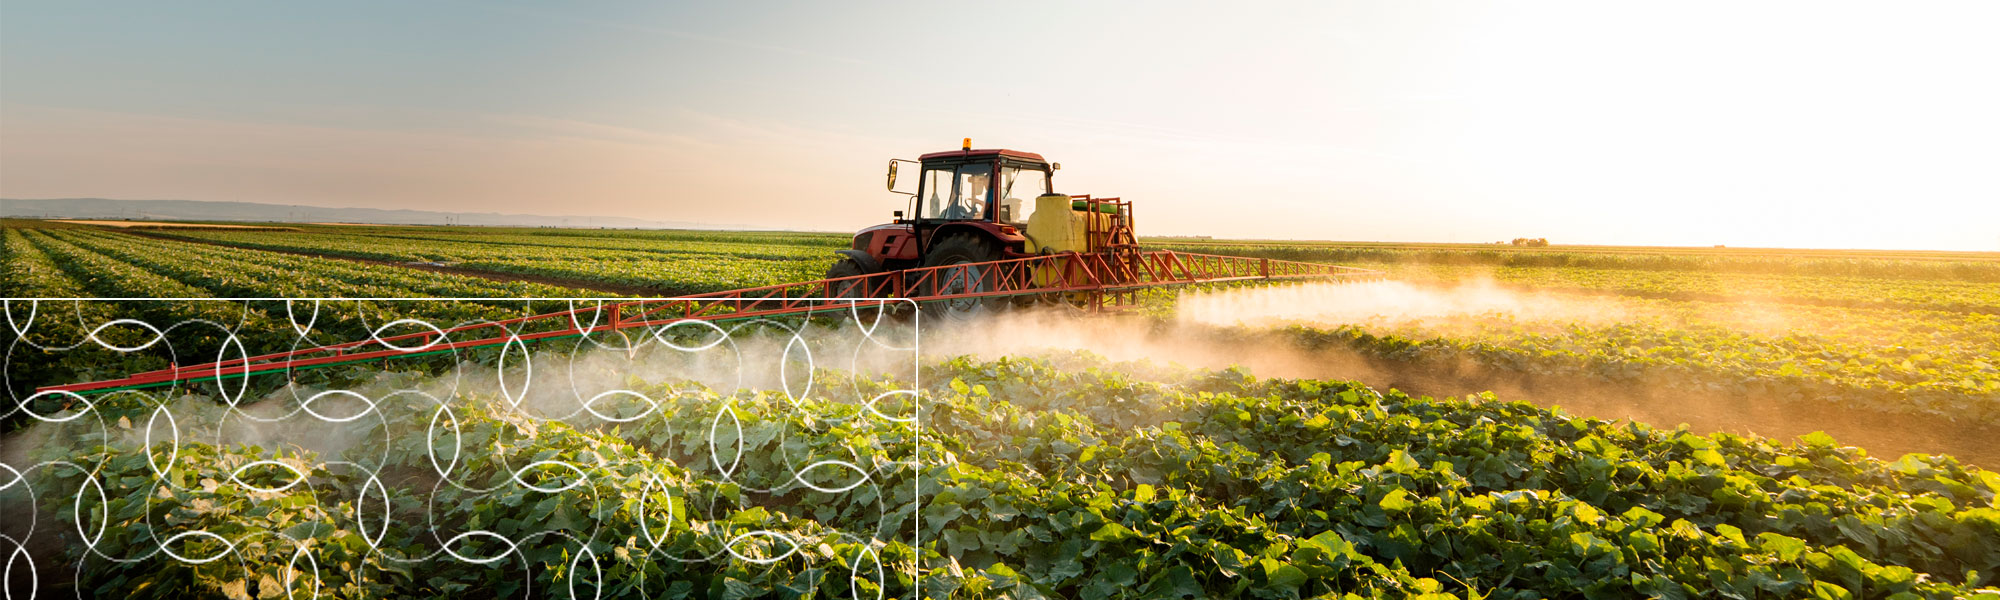 Challenges in the Field: Increased Productivity and the Role of Adjuvants